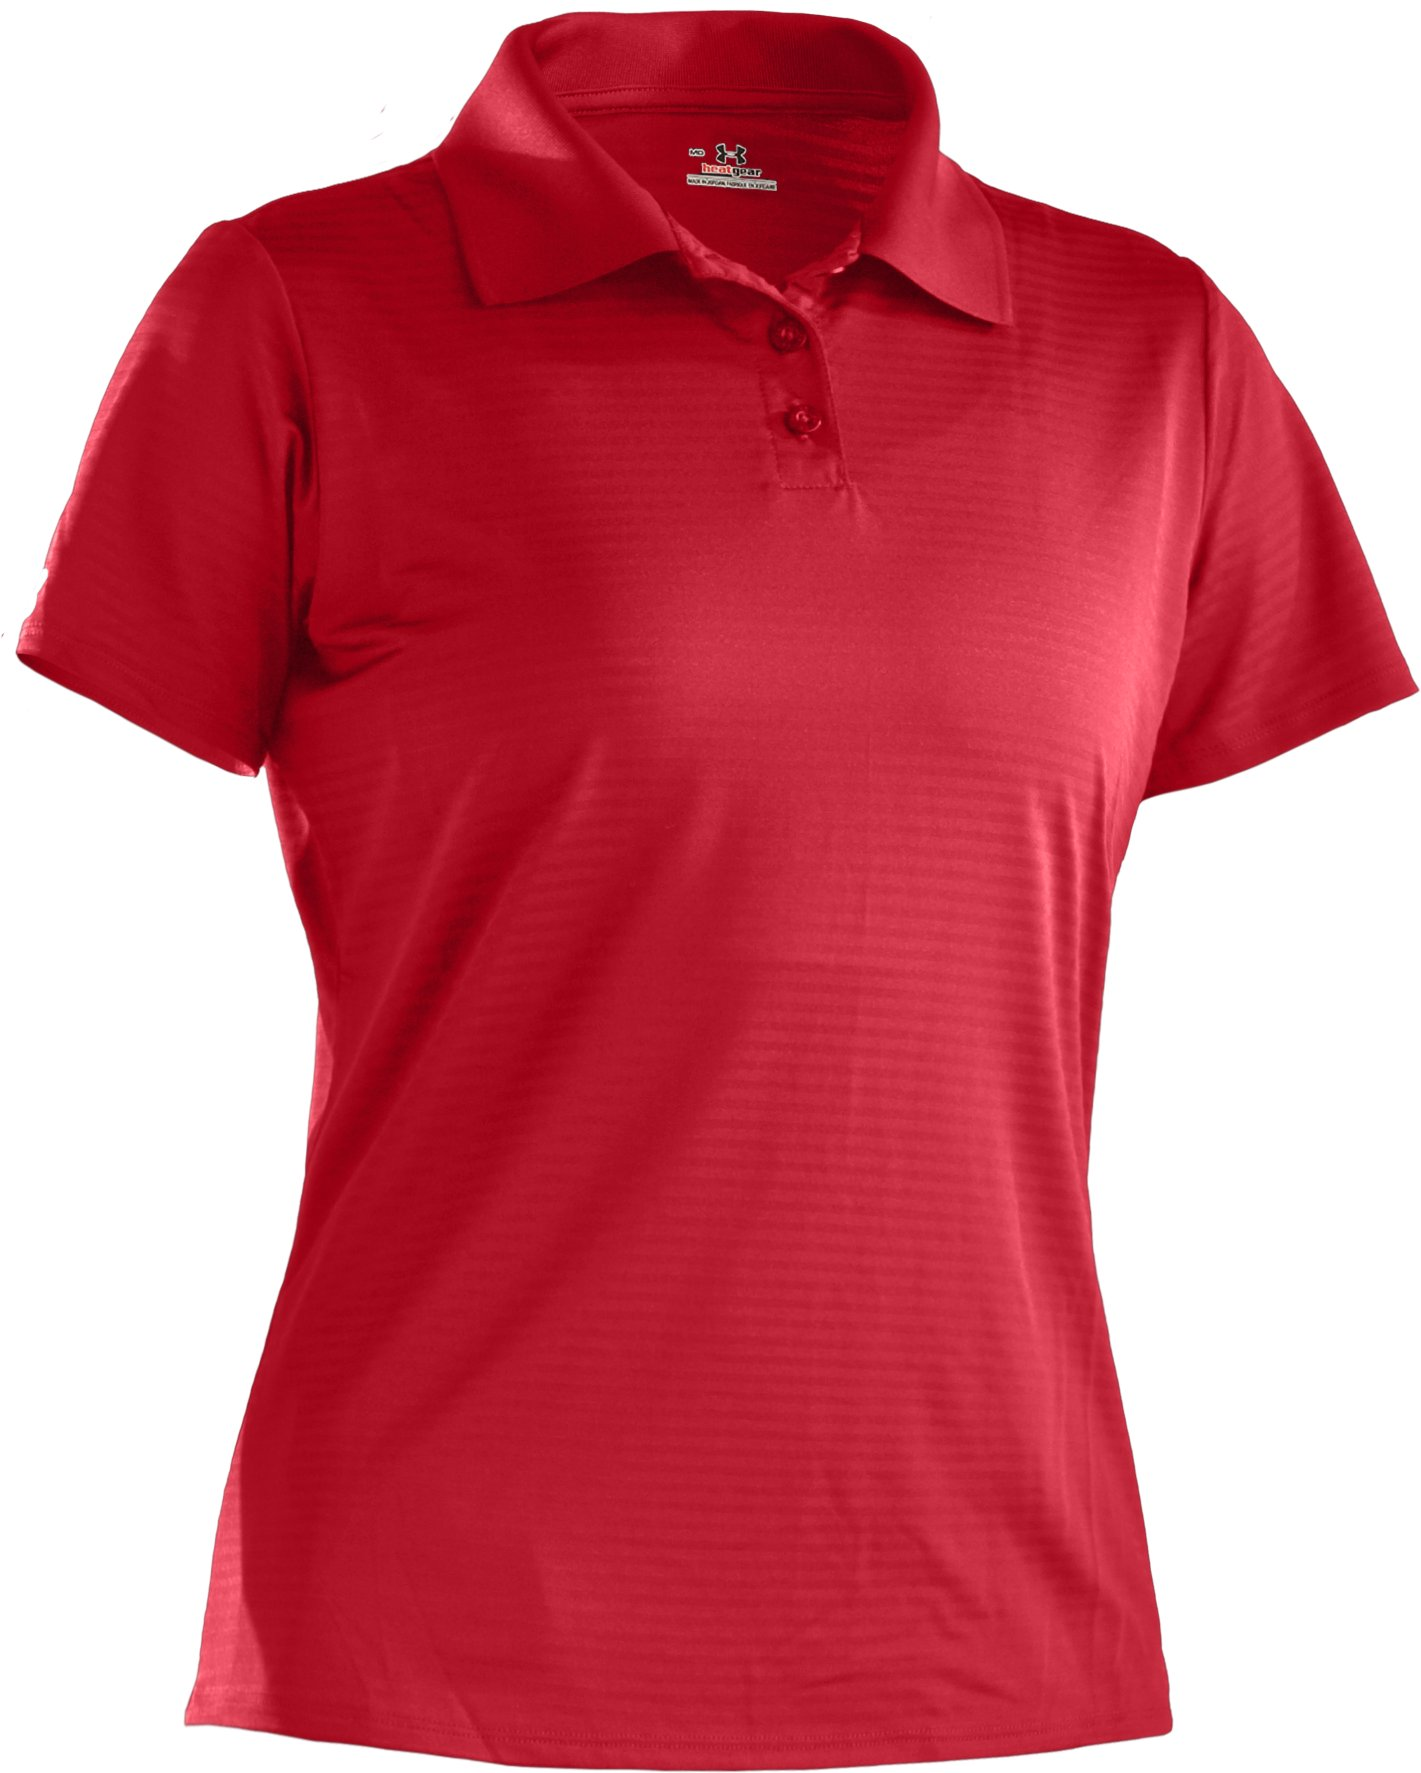 Women's UA Catalyst Team Short Sleeve Polo, Red